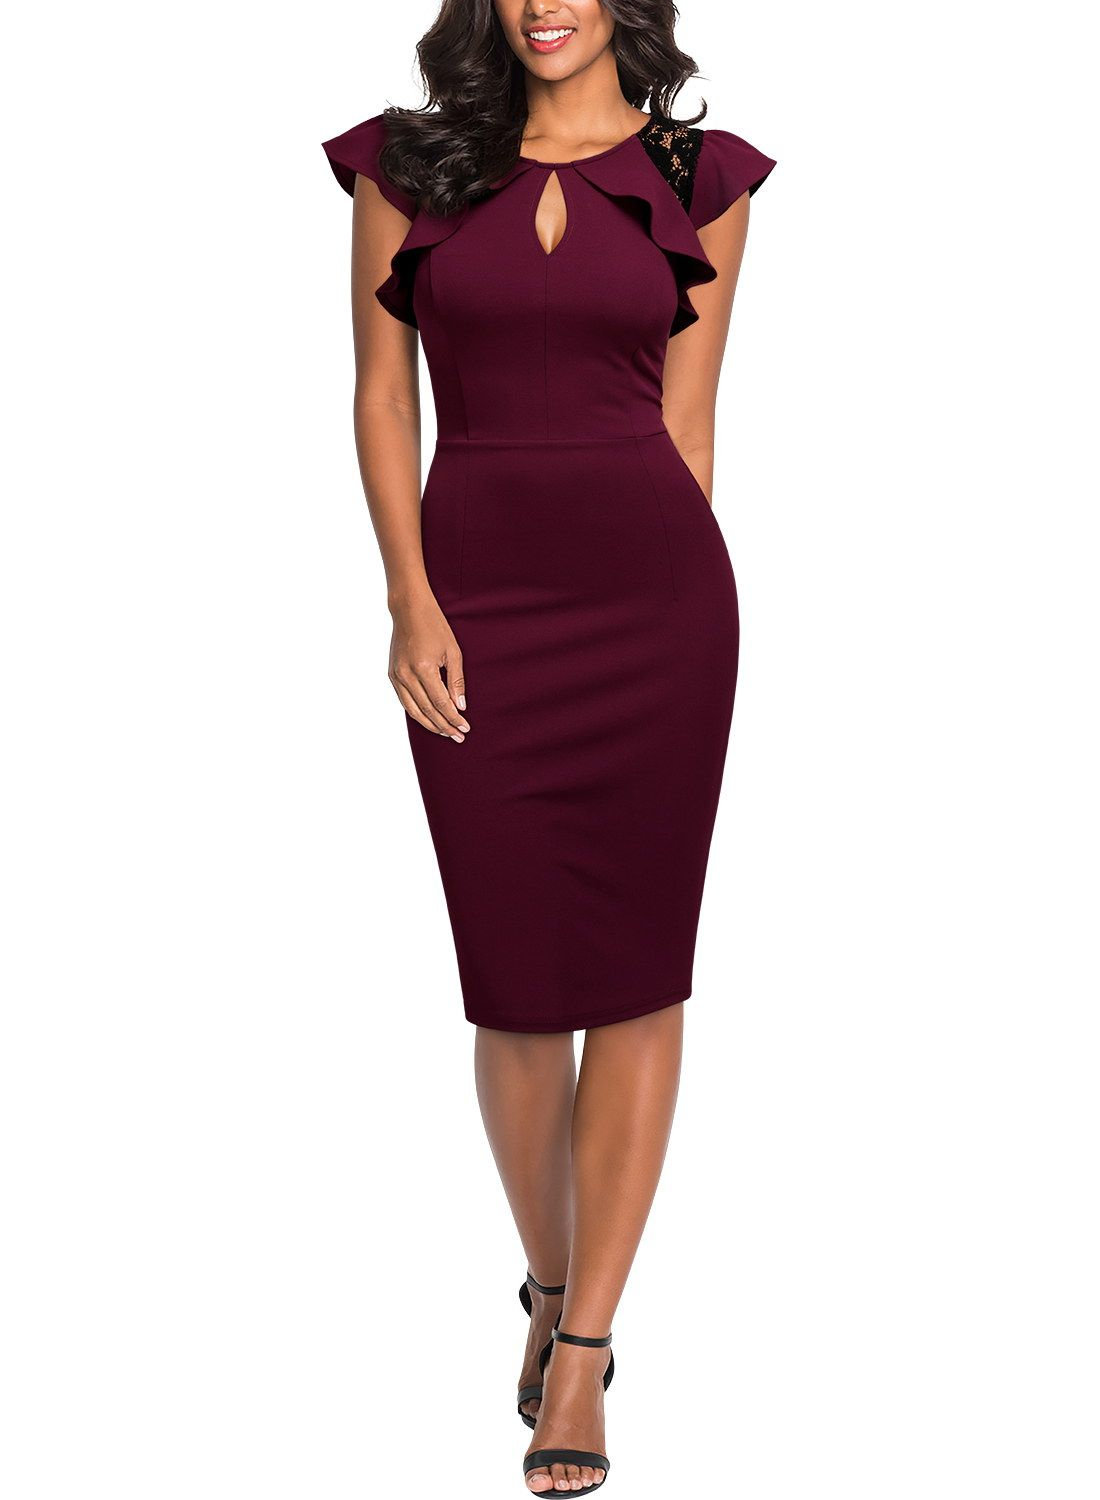 Free 2 Day Shipping Buy Miusol Women S Formal Work Pencil Dresses Cocktail Party Bodycon Dresses Win Bodycon Dress Parties Cocktail Dress Party Bodycon Dress [ 1500 x 1100 Pixel ]